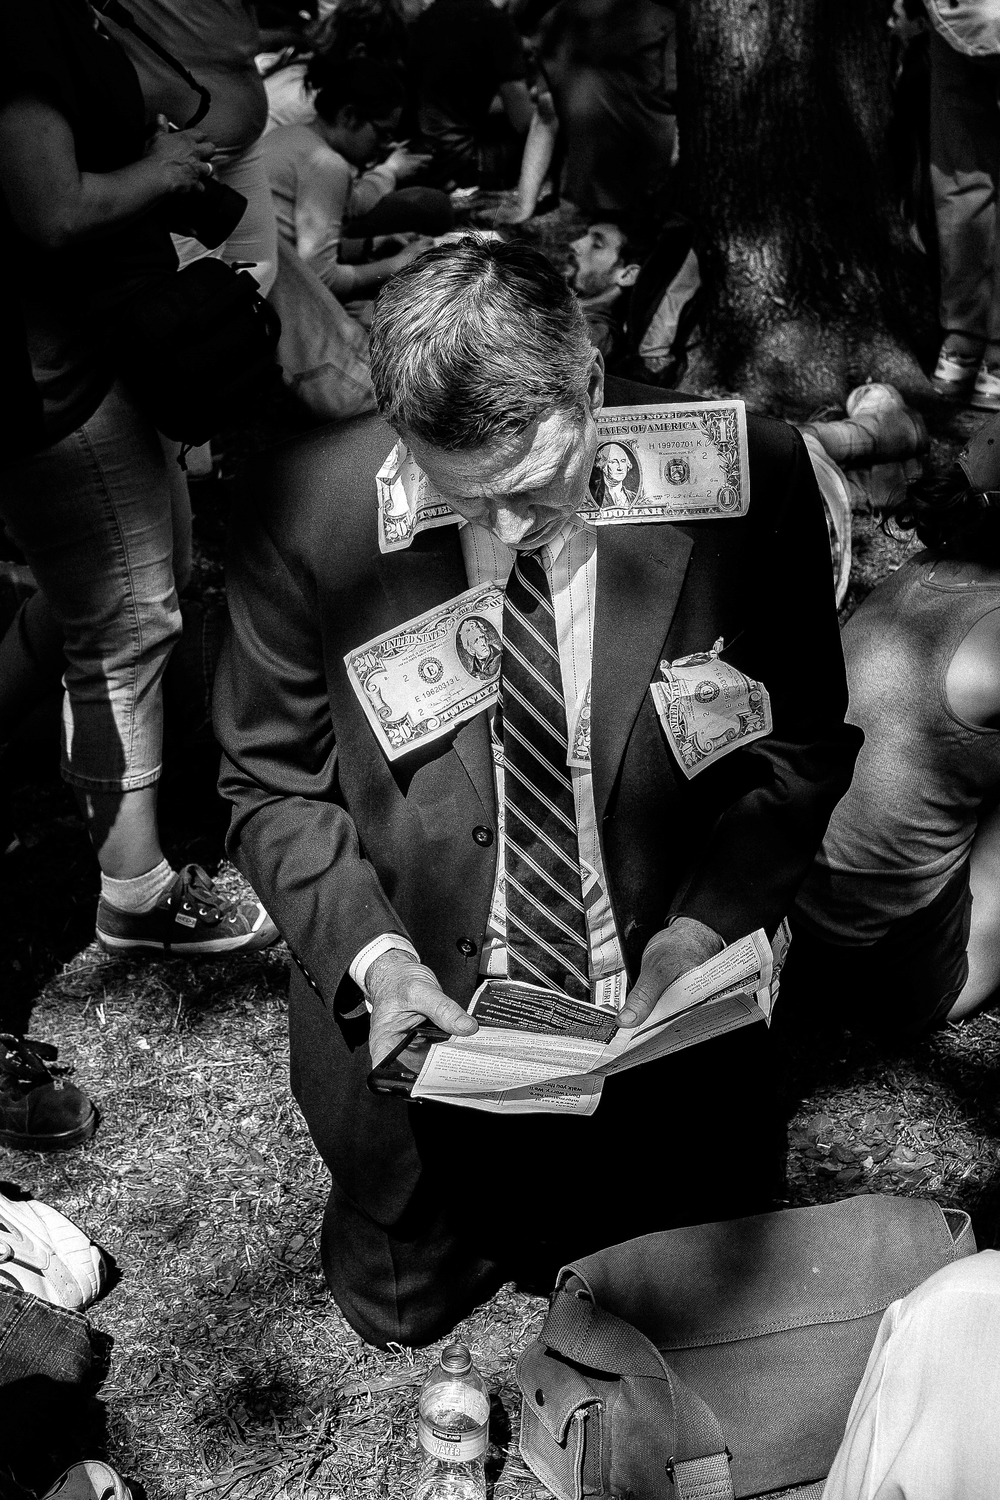 Occupy Wall Street protester, Manhattan NY